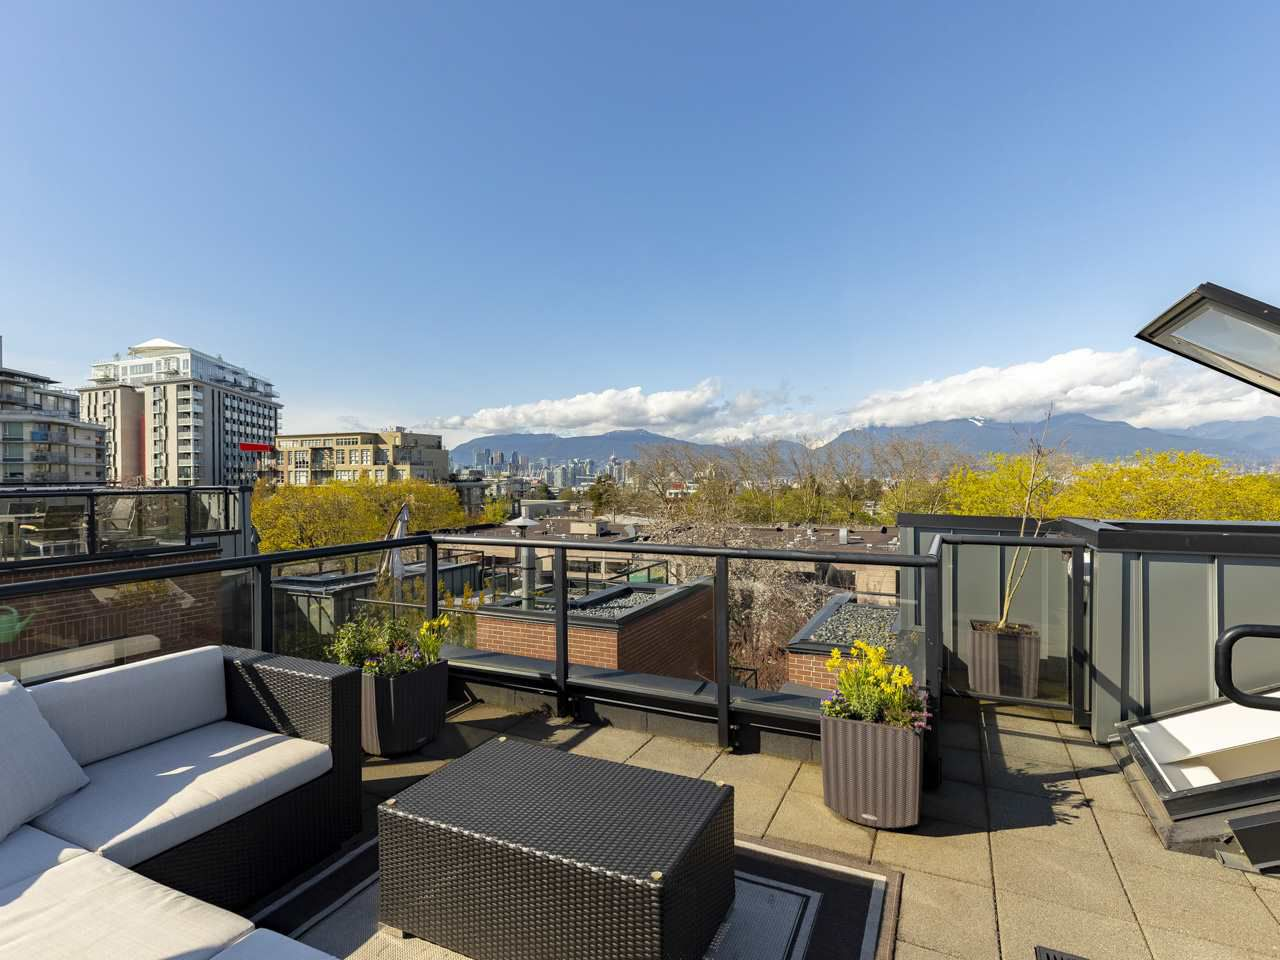 """Main Photo: 2709 GUELPH Street in Vancouver: Mount Pleasant VE Townhouse for sale in """"THE BLOCK"""" (Vancouver East)  : MLS®# R2357559"""